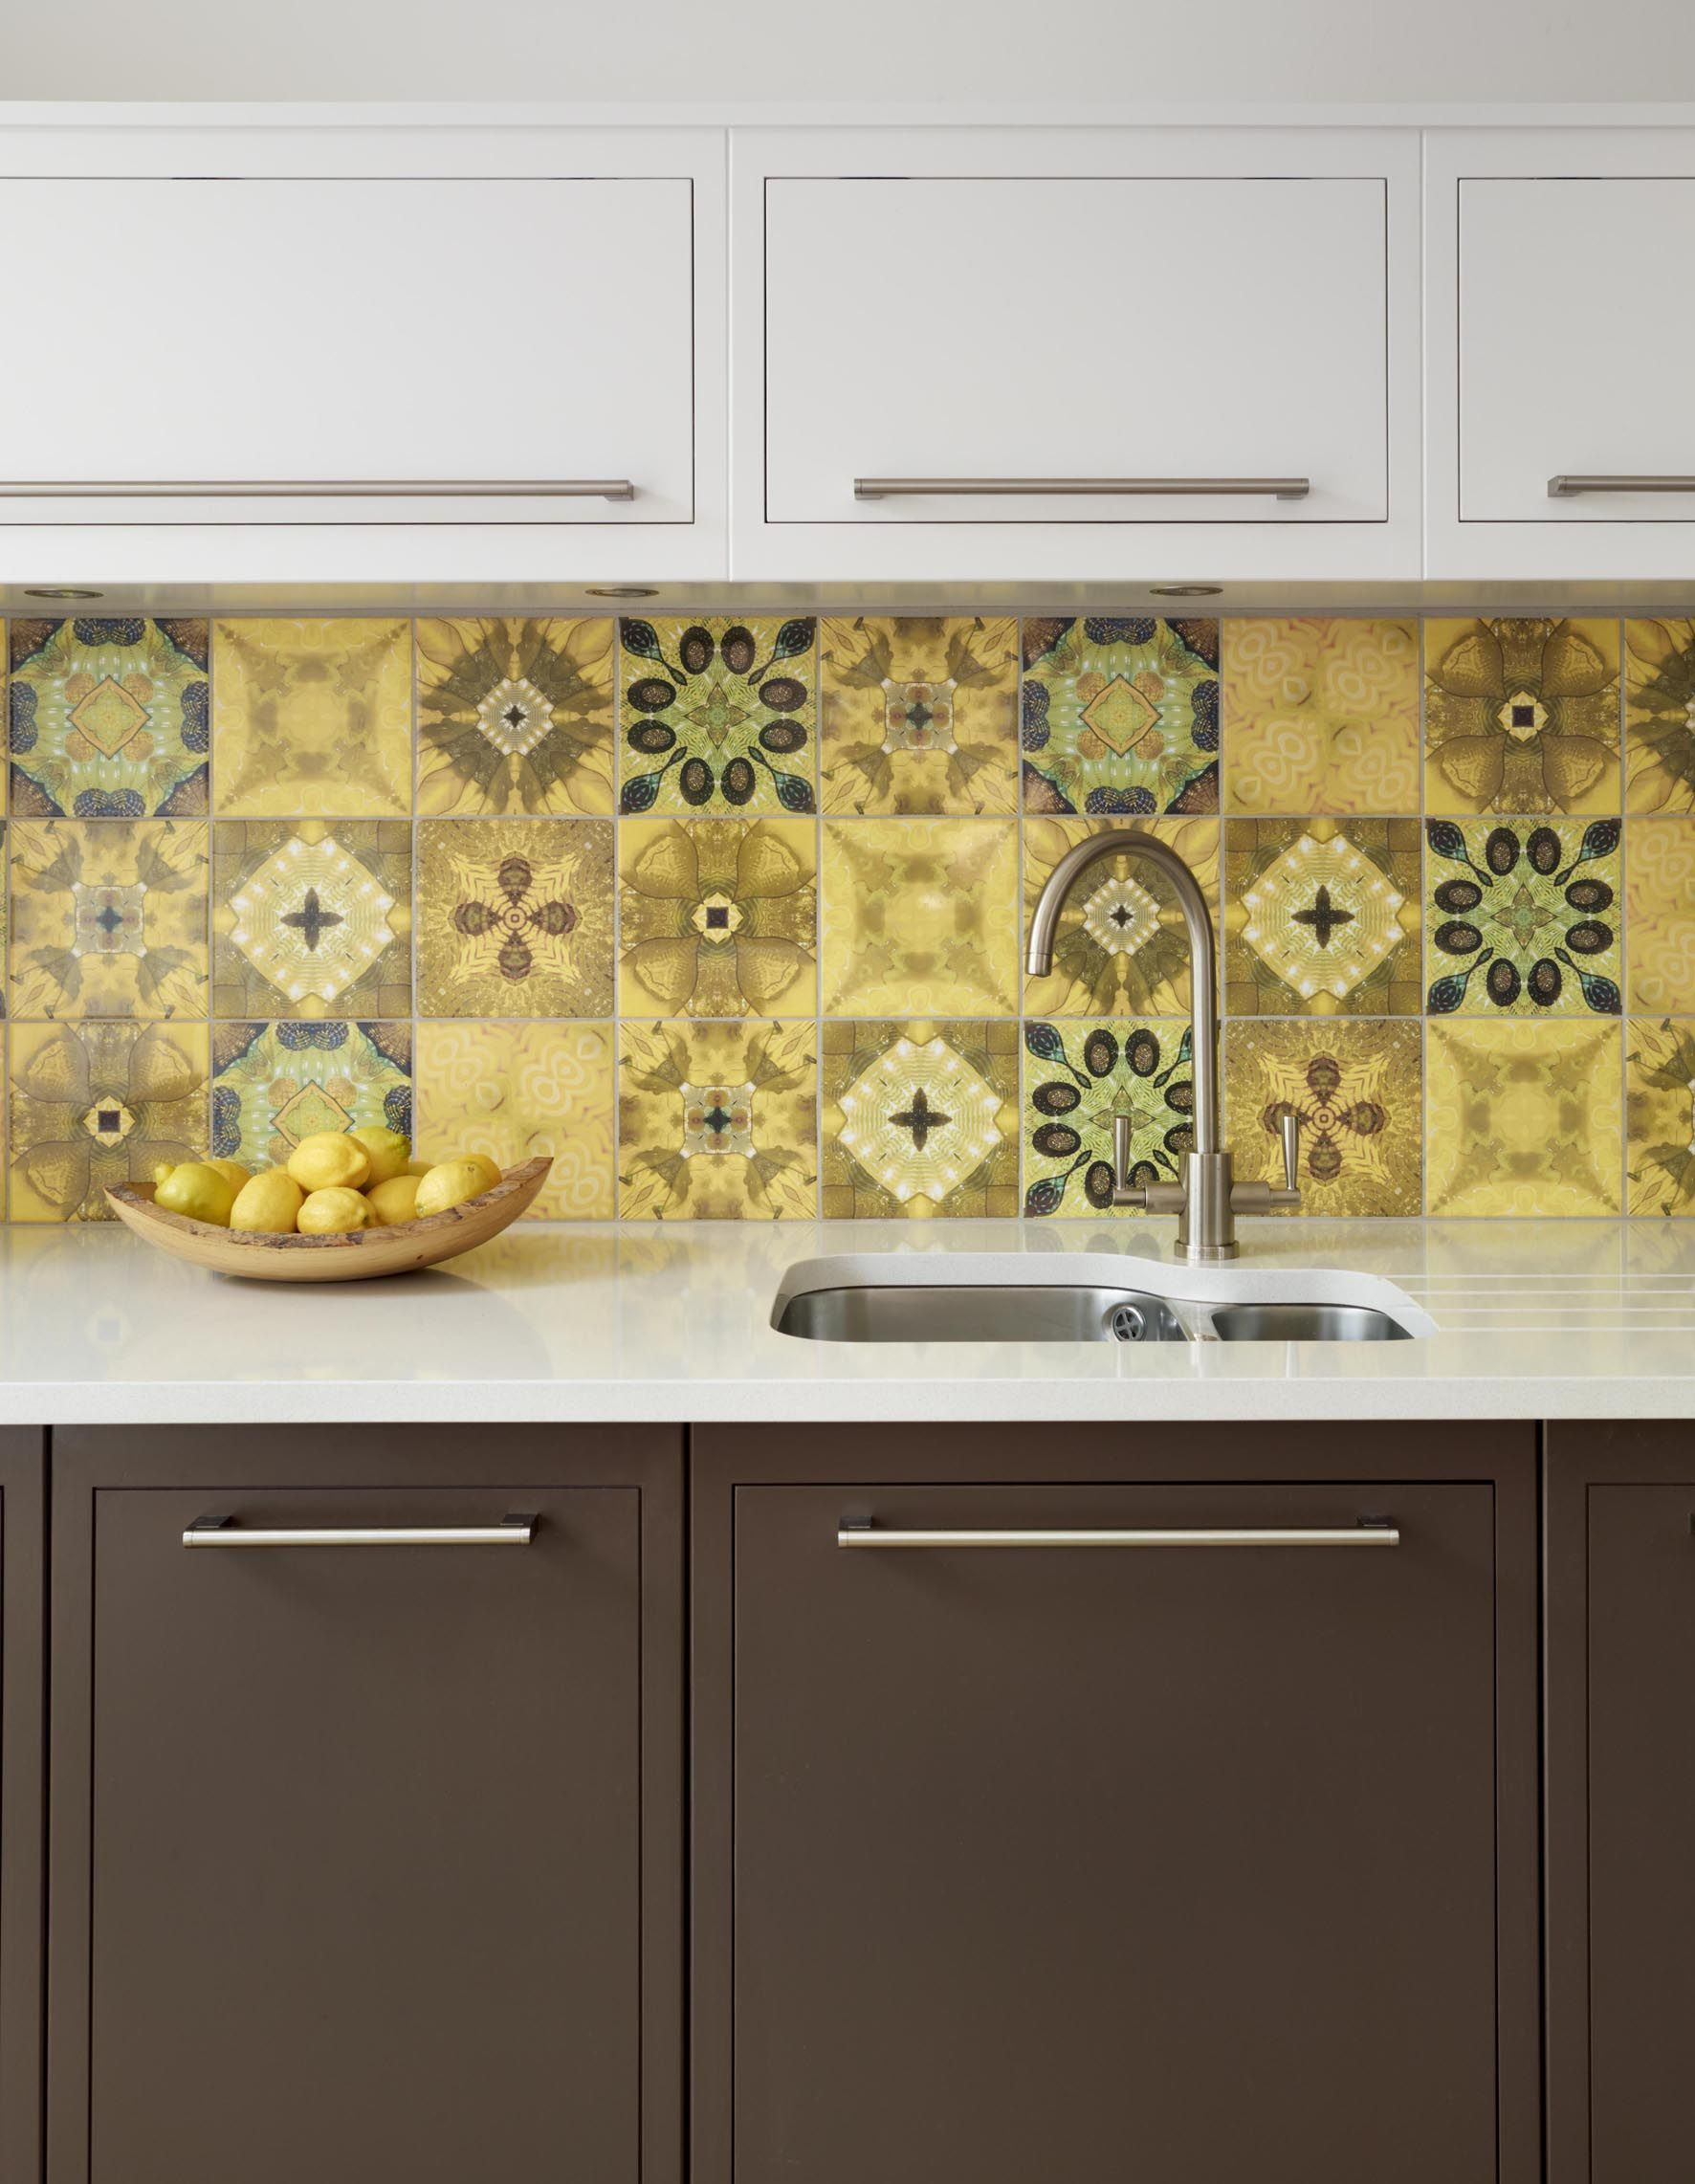 Image result for large yellow patterned tile backsplash